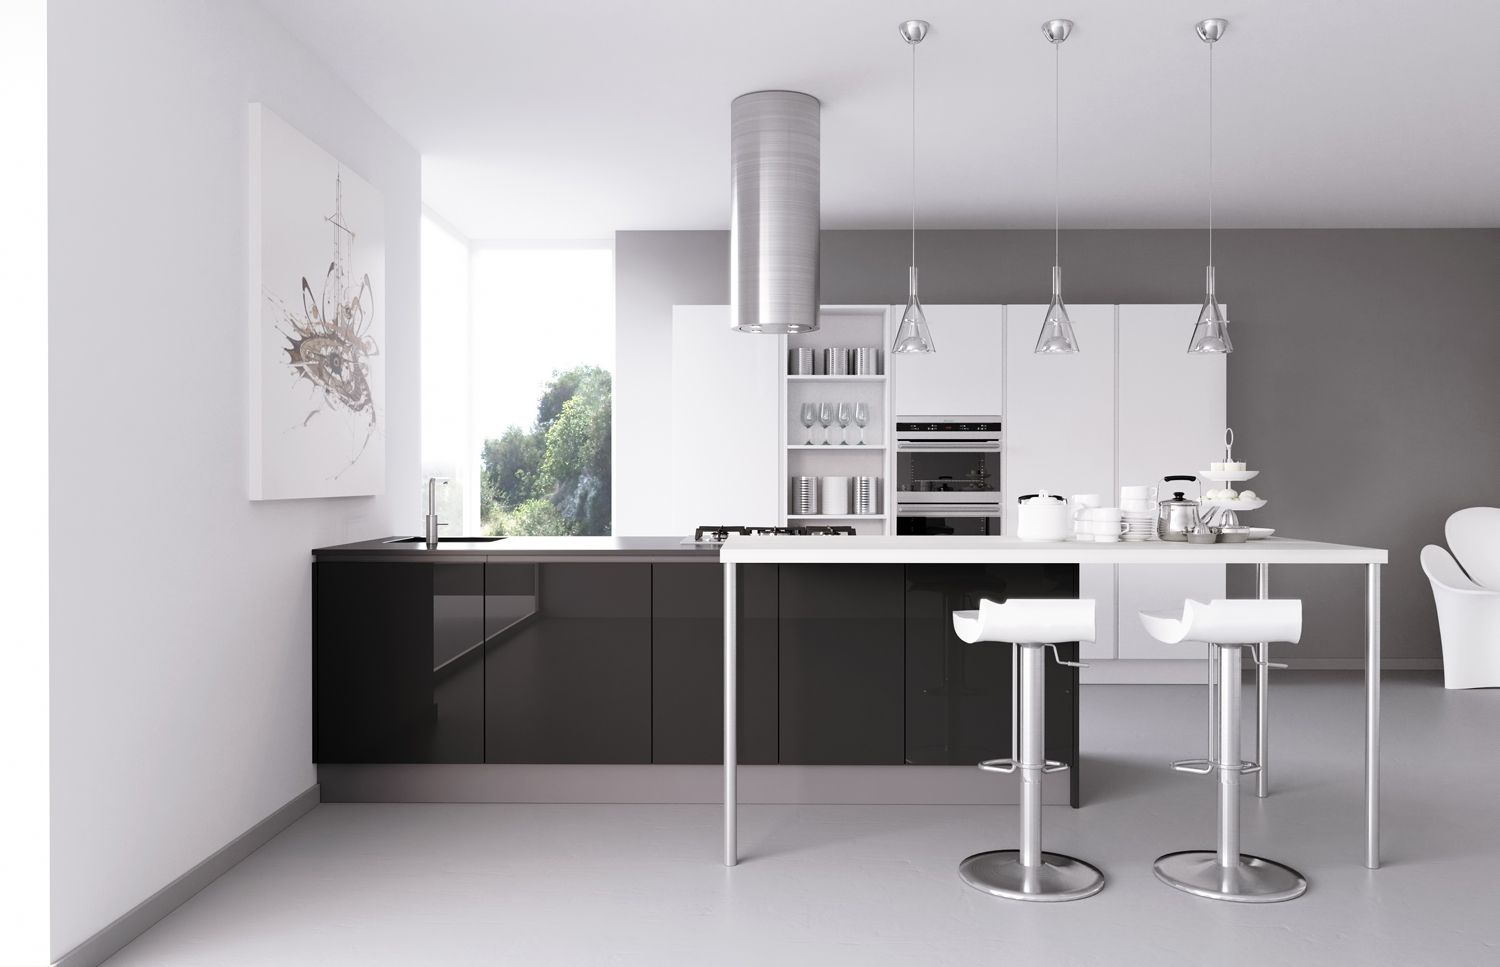 Emejing outlet cucine napoli pictures amazing house for Outlet arredamento napoli